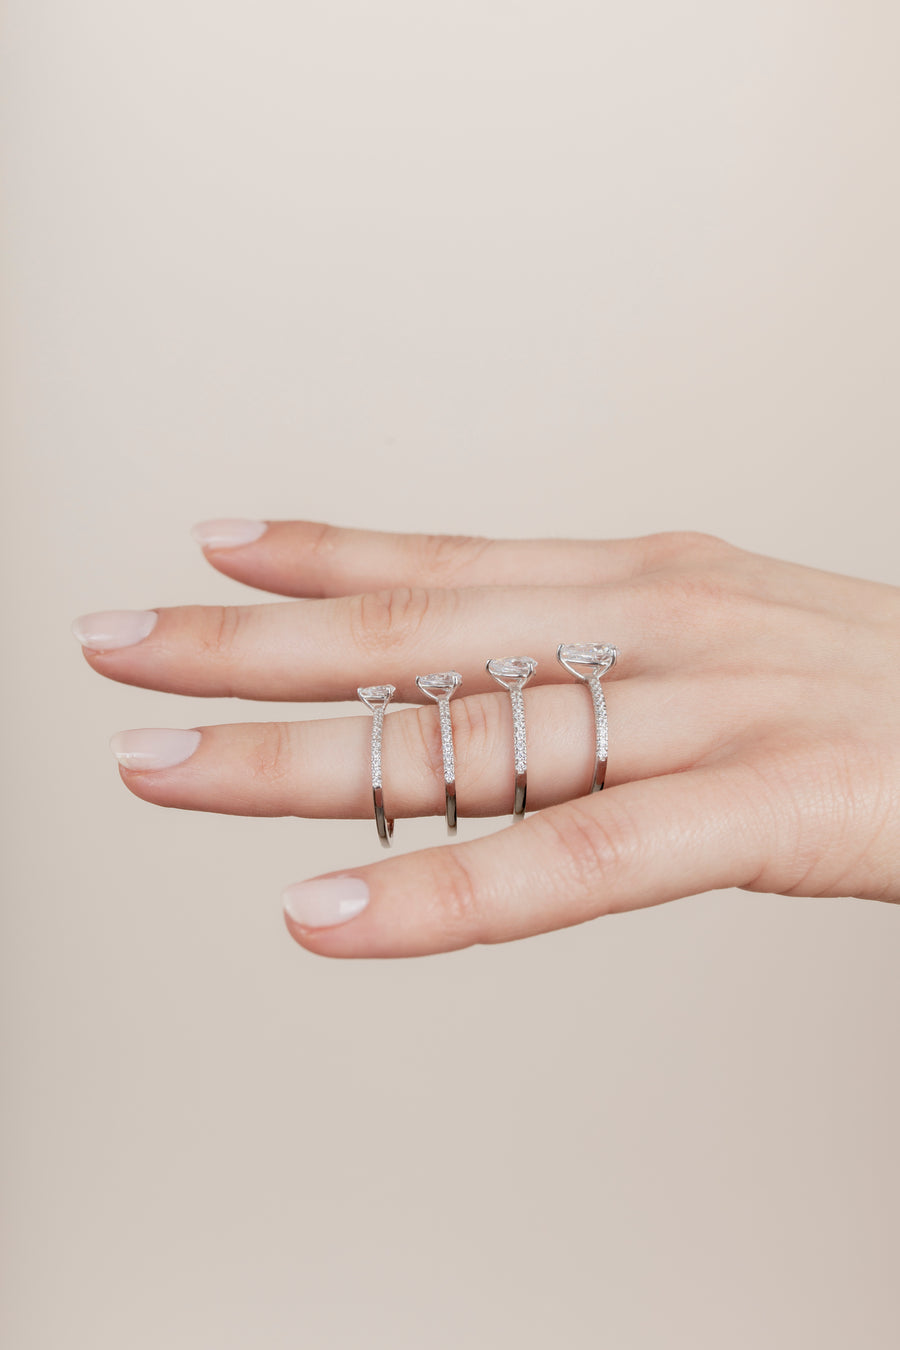 The Pear Solitaire with Pavé band